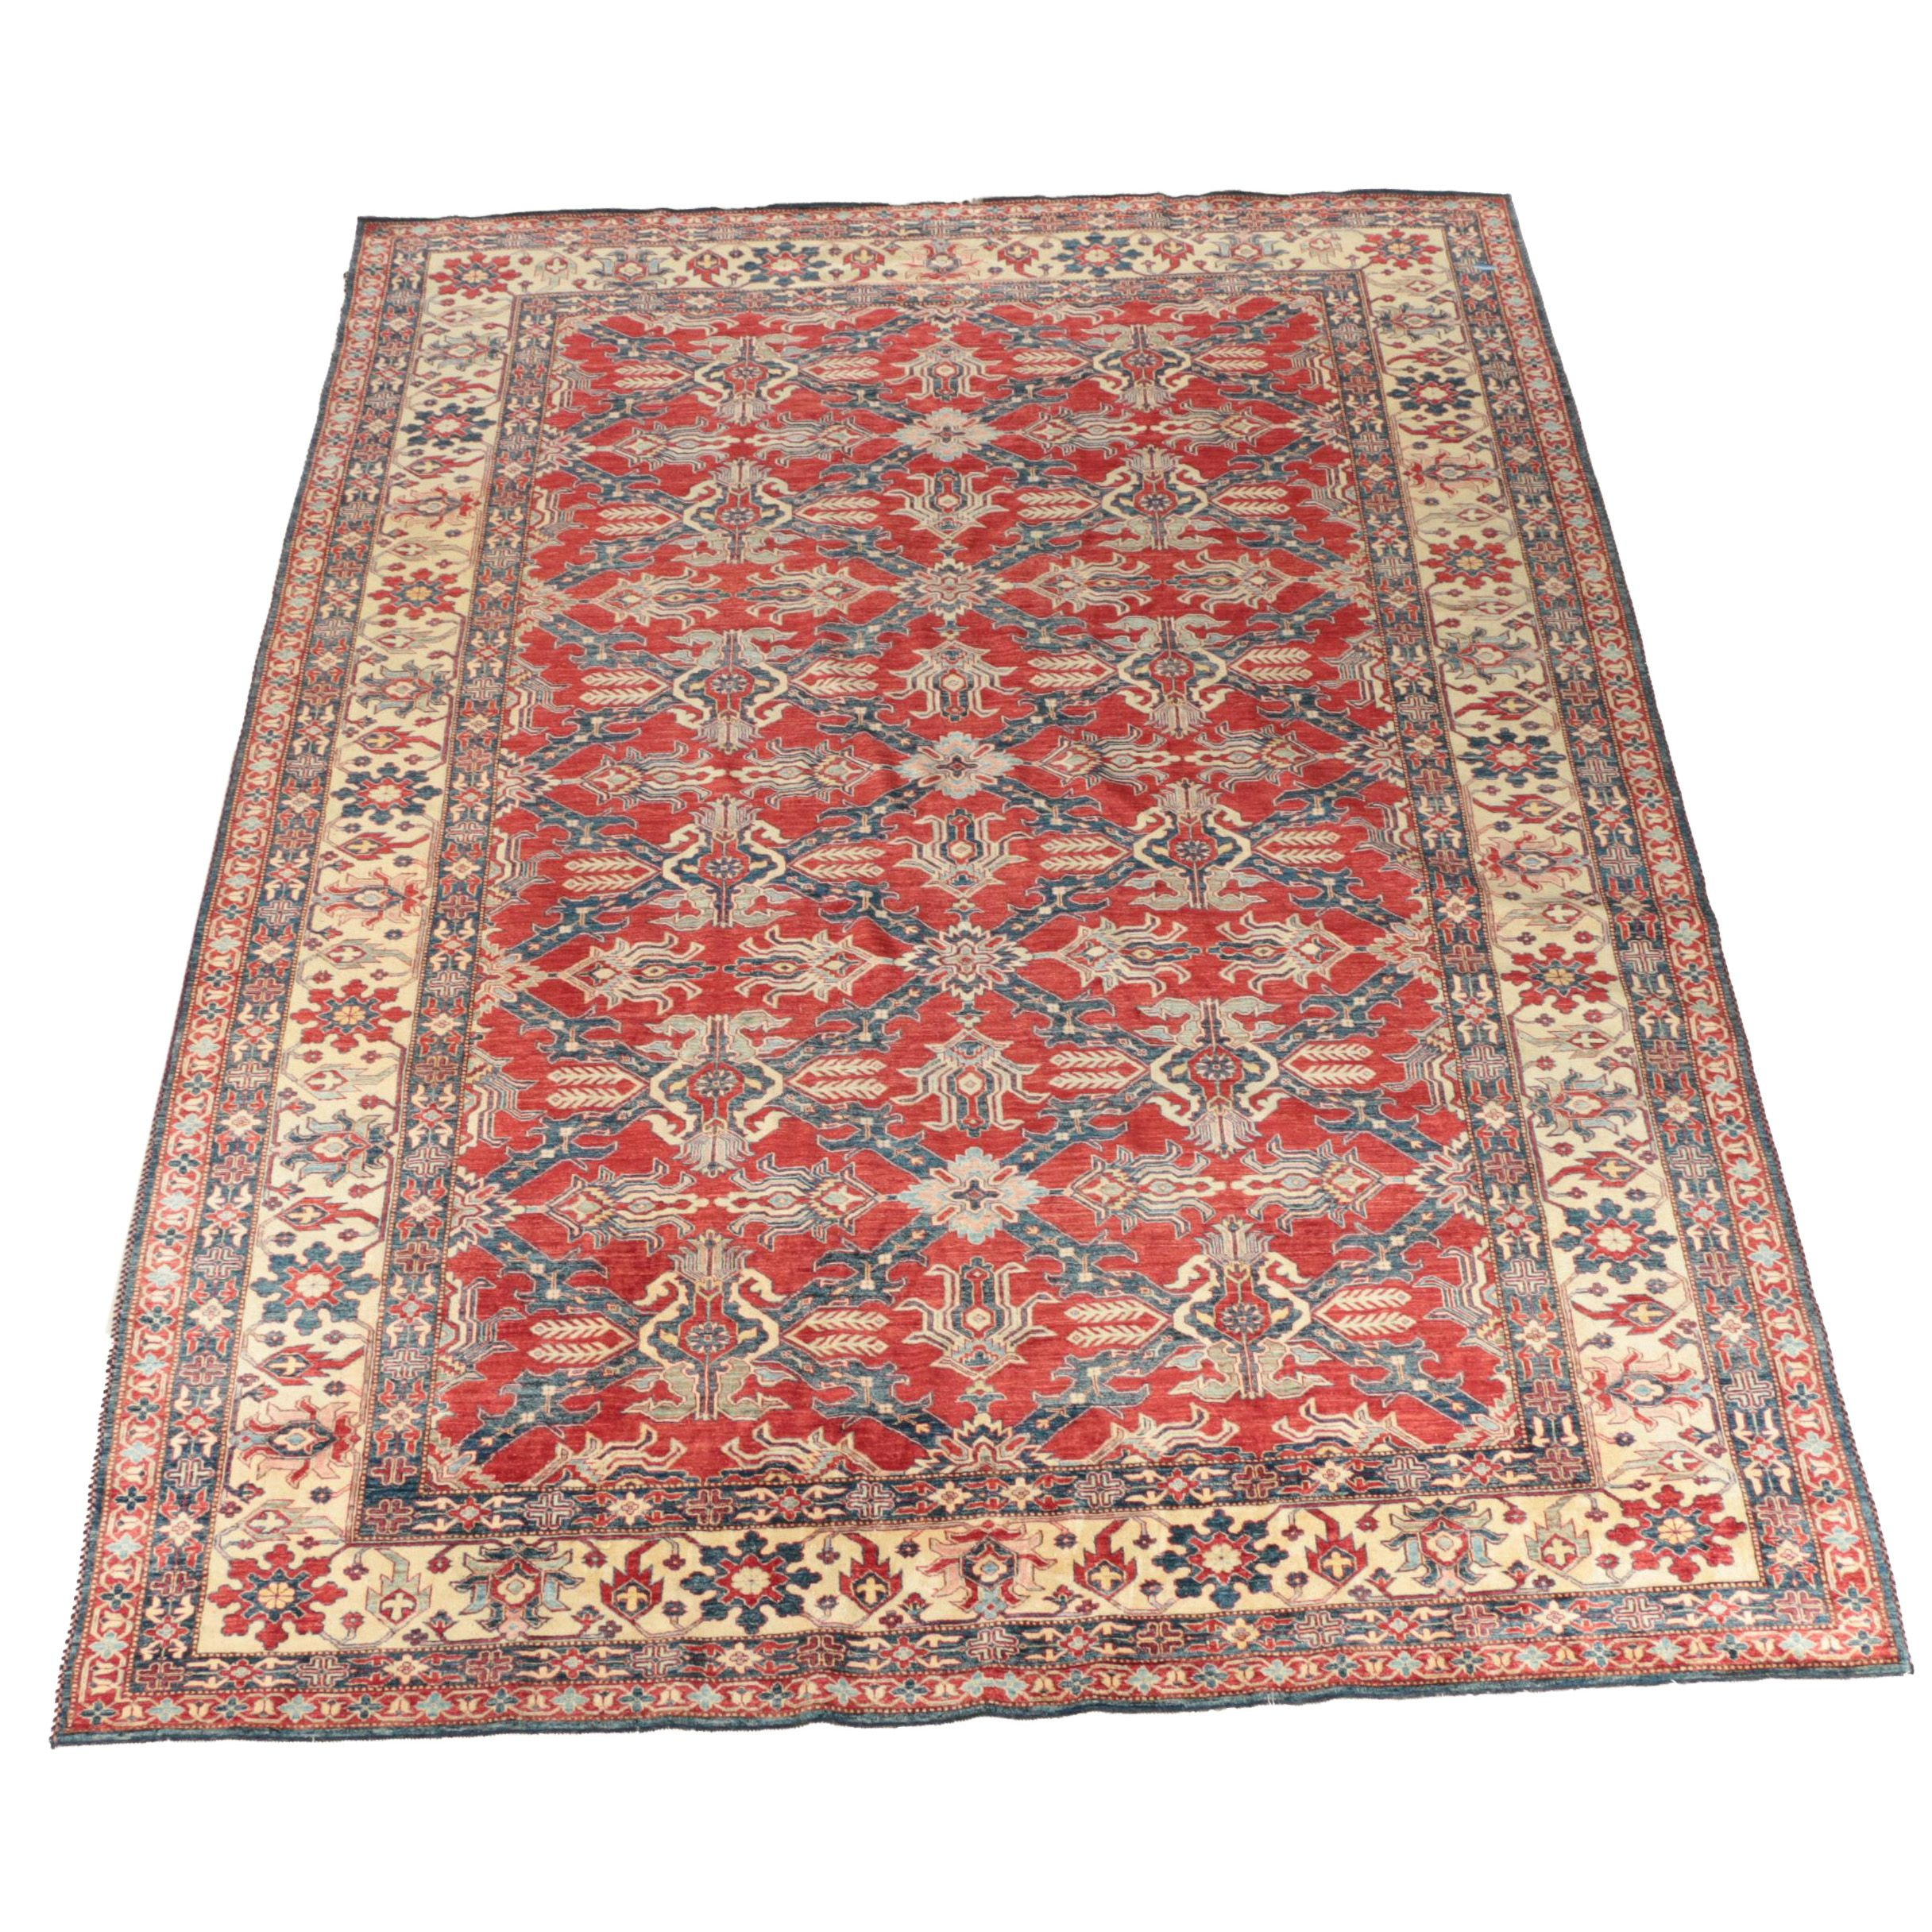 Hand-Knotted Indian Mahal Wool Room Sized Rug